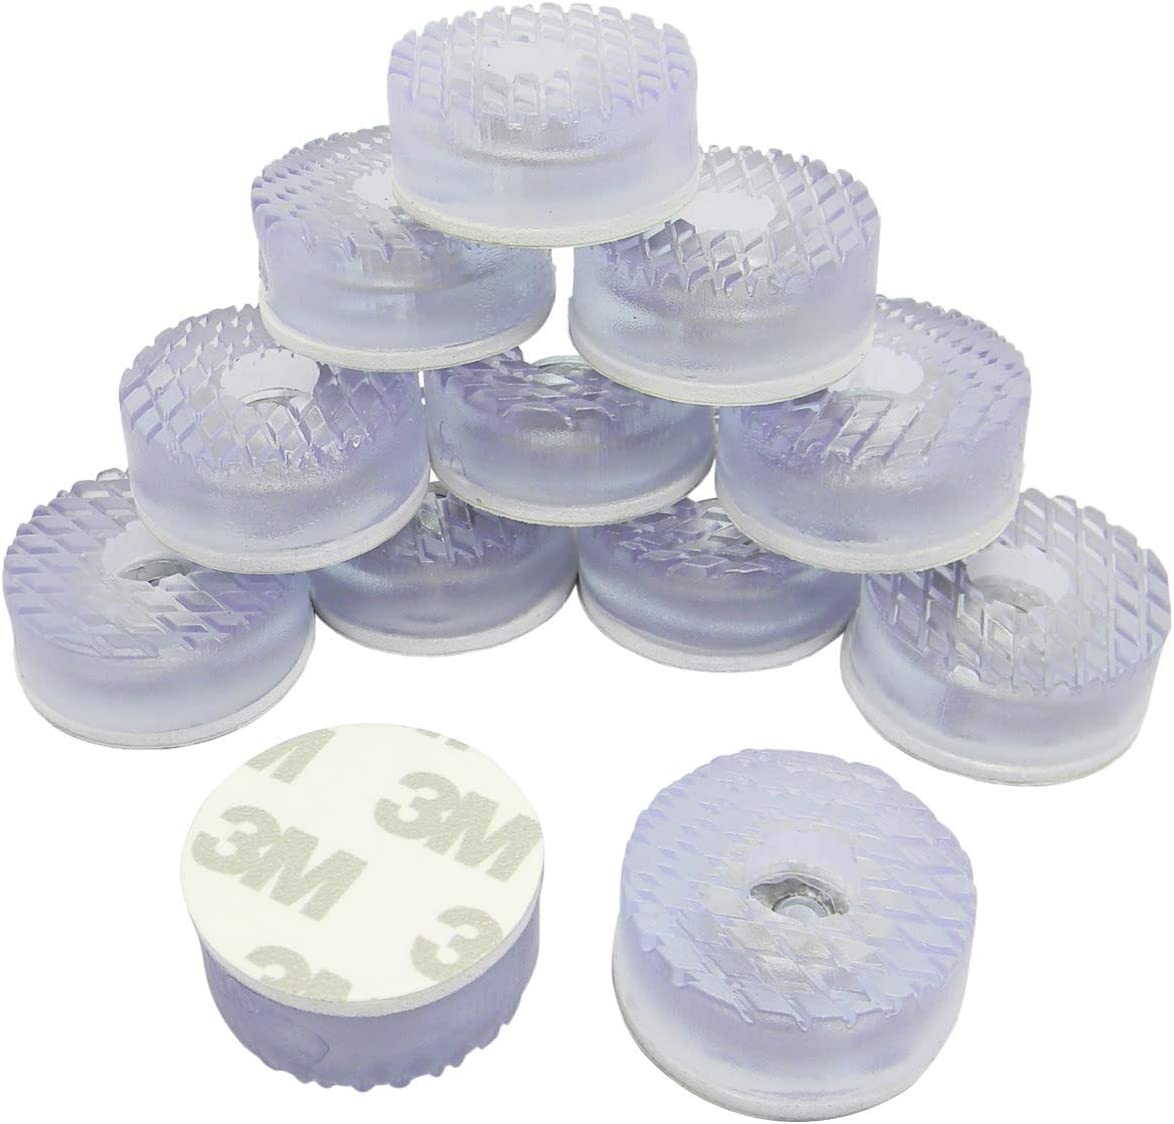 Transparent Cylindrical Shape Rubber Non Slip Non Skid Feet Pad for Table Desk Chair and Sofa 30MM 20PCS